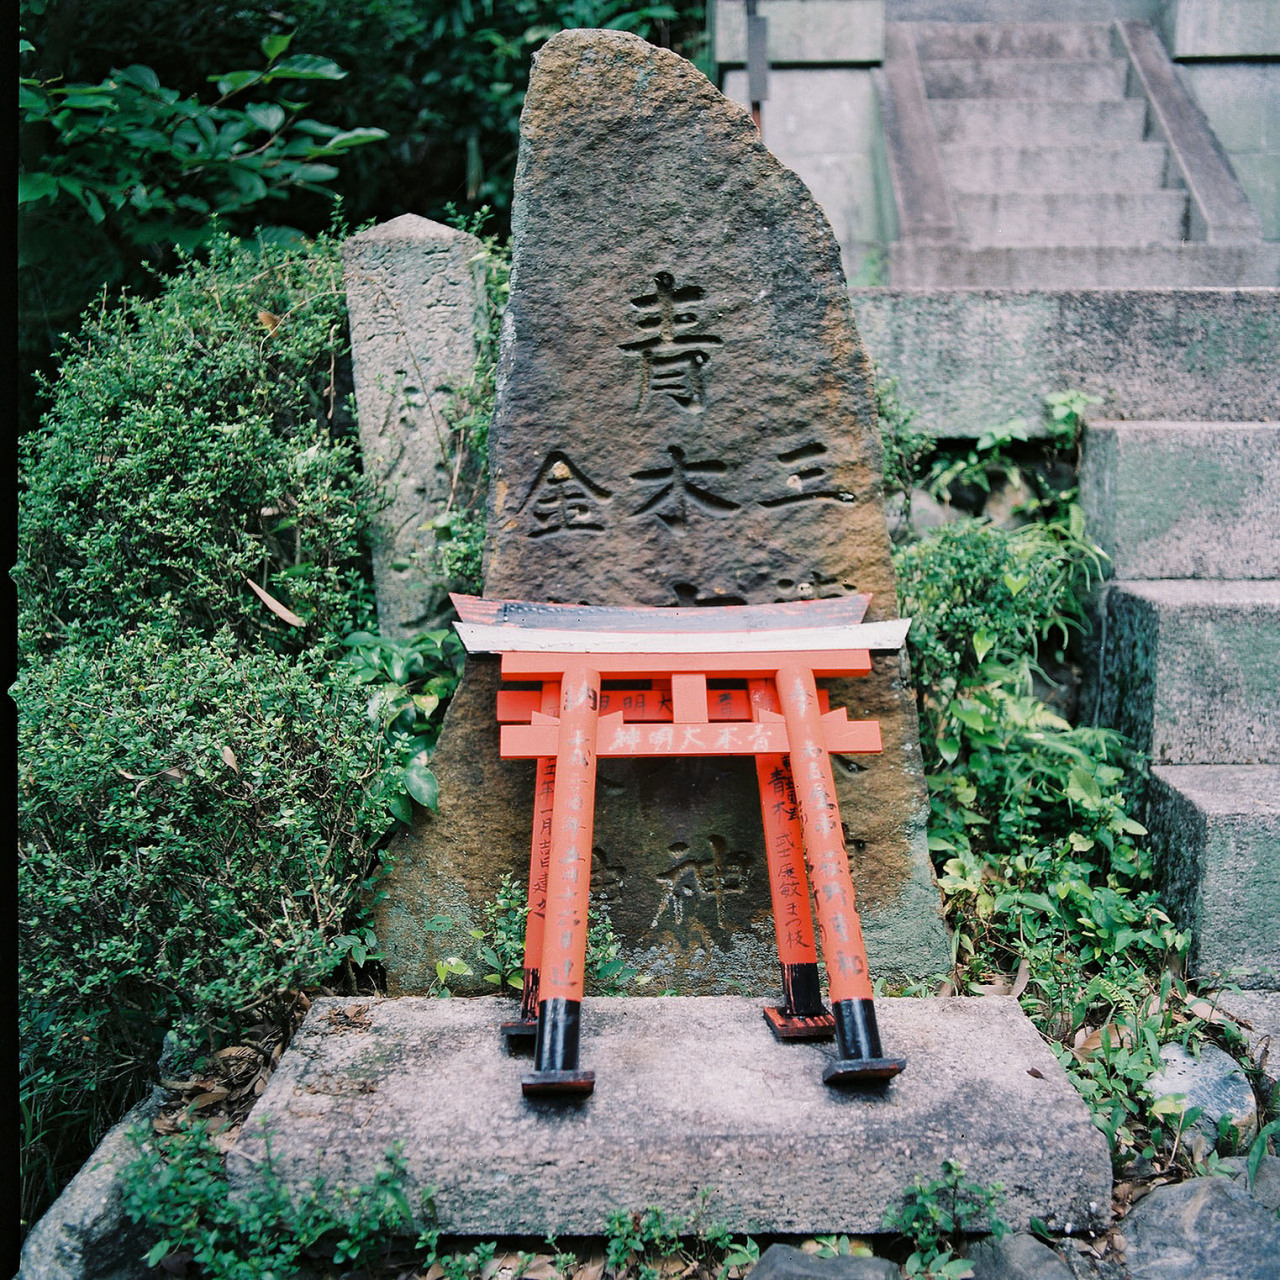 Fushimi Inari Taisha ShrineView Post